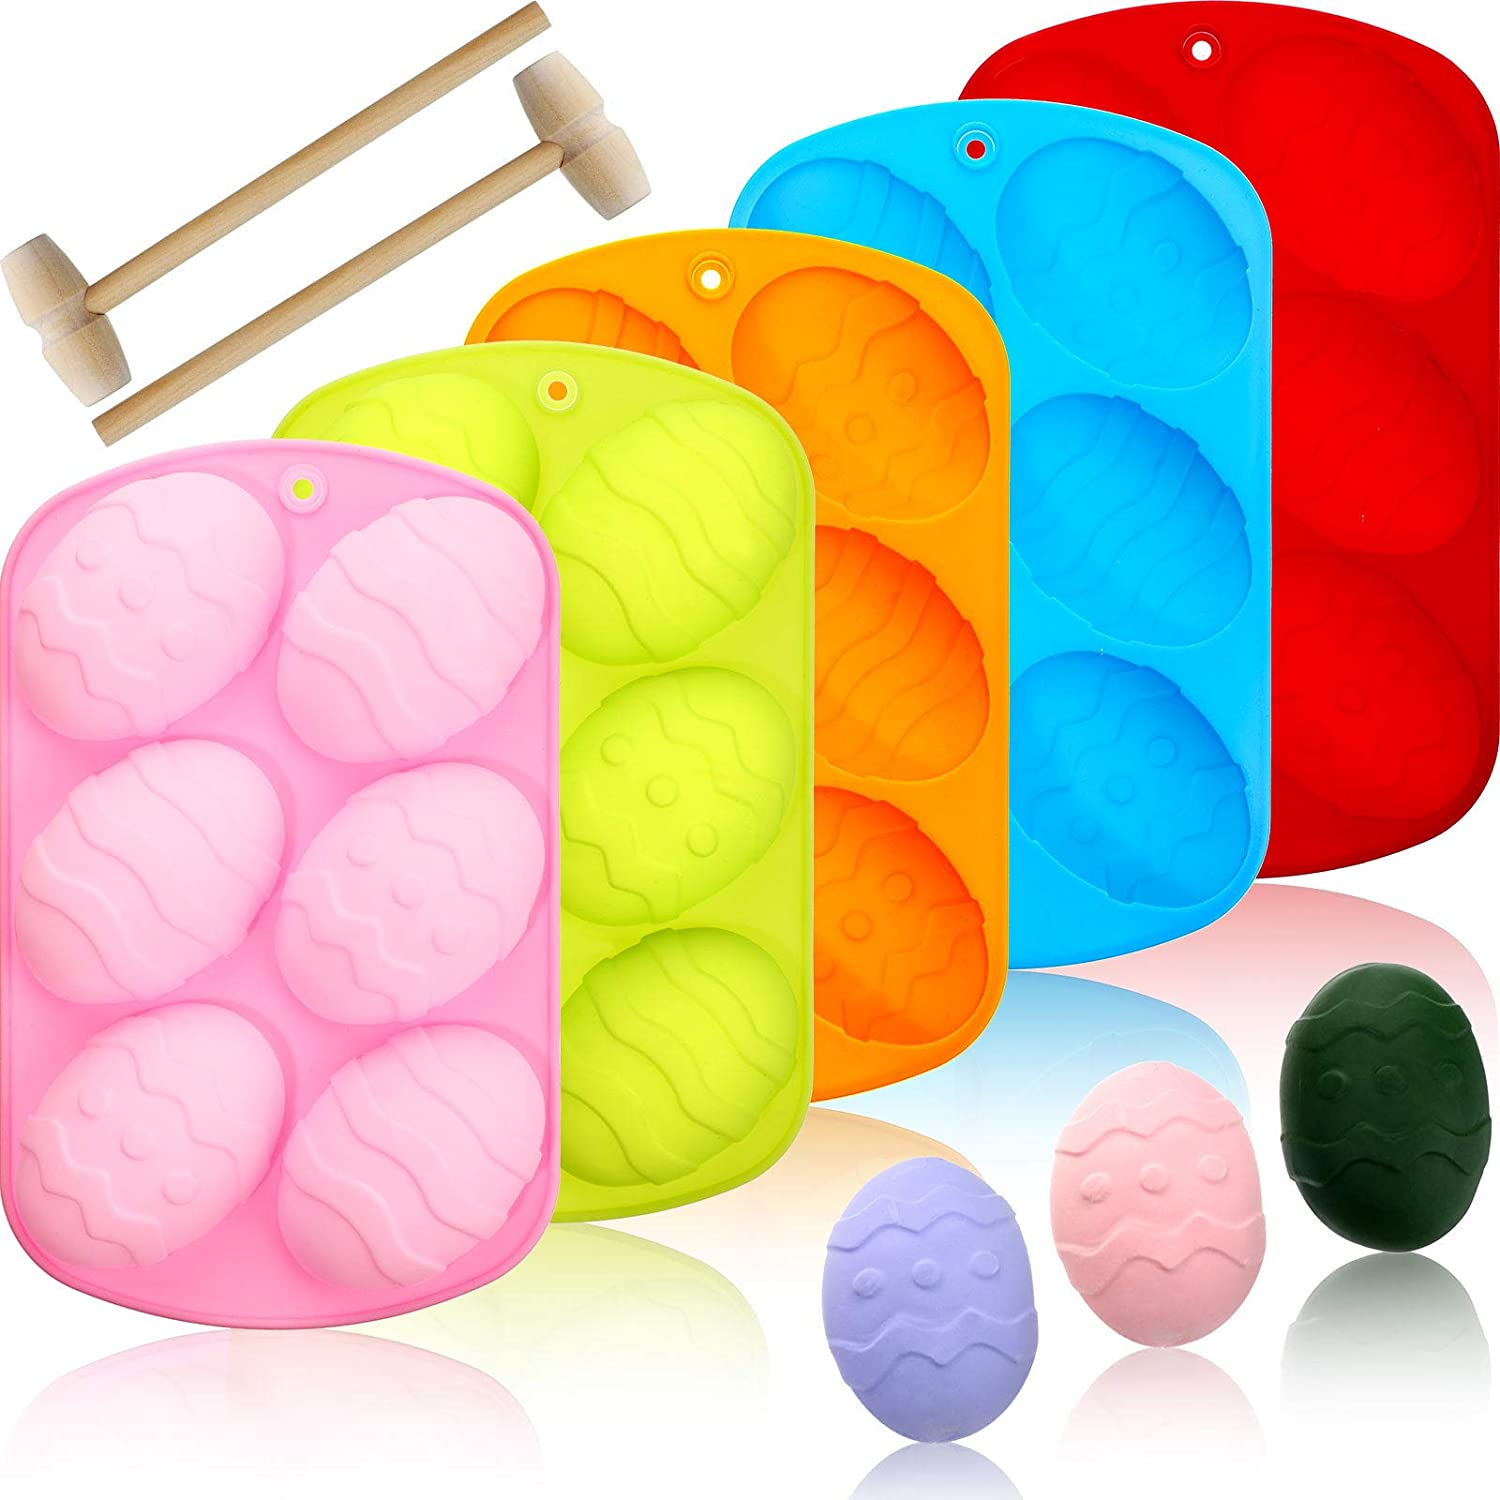 5 Pieces Easter Egg Chocolate Candy Molds Easter Egg Shaped Silicone Cake Molds Silicone Molds Trays with 2 Pieces Wooden Hammer for Candy Chocolate Handmade Soap and Ice Cube Egg Hunt Games Supplies